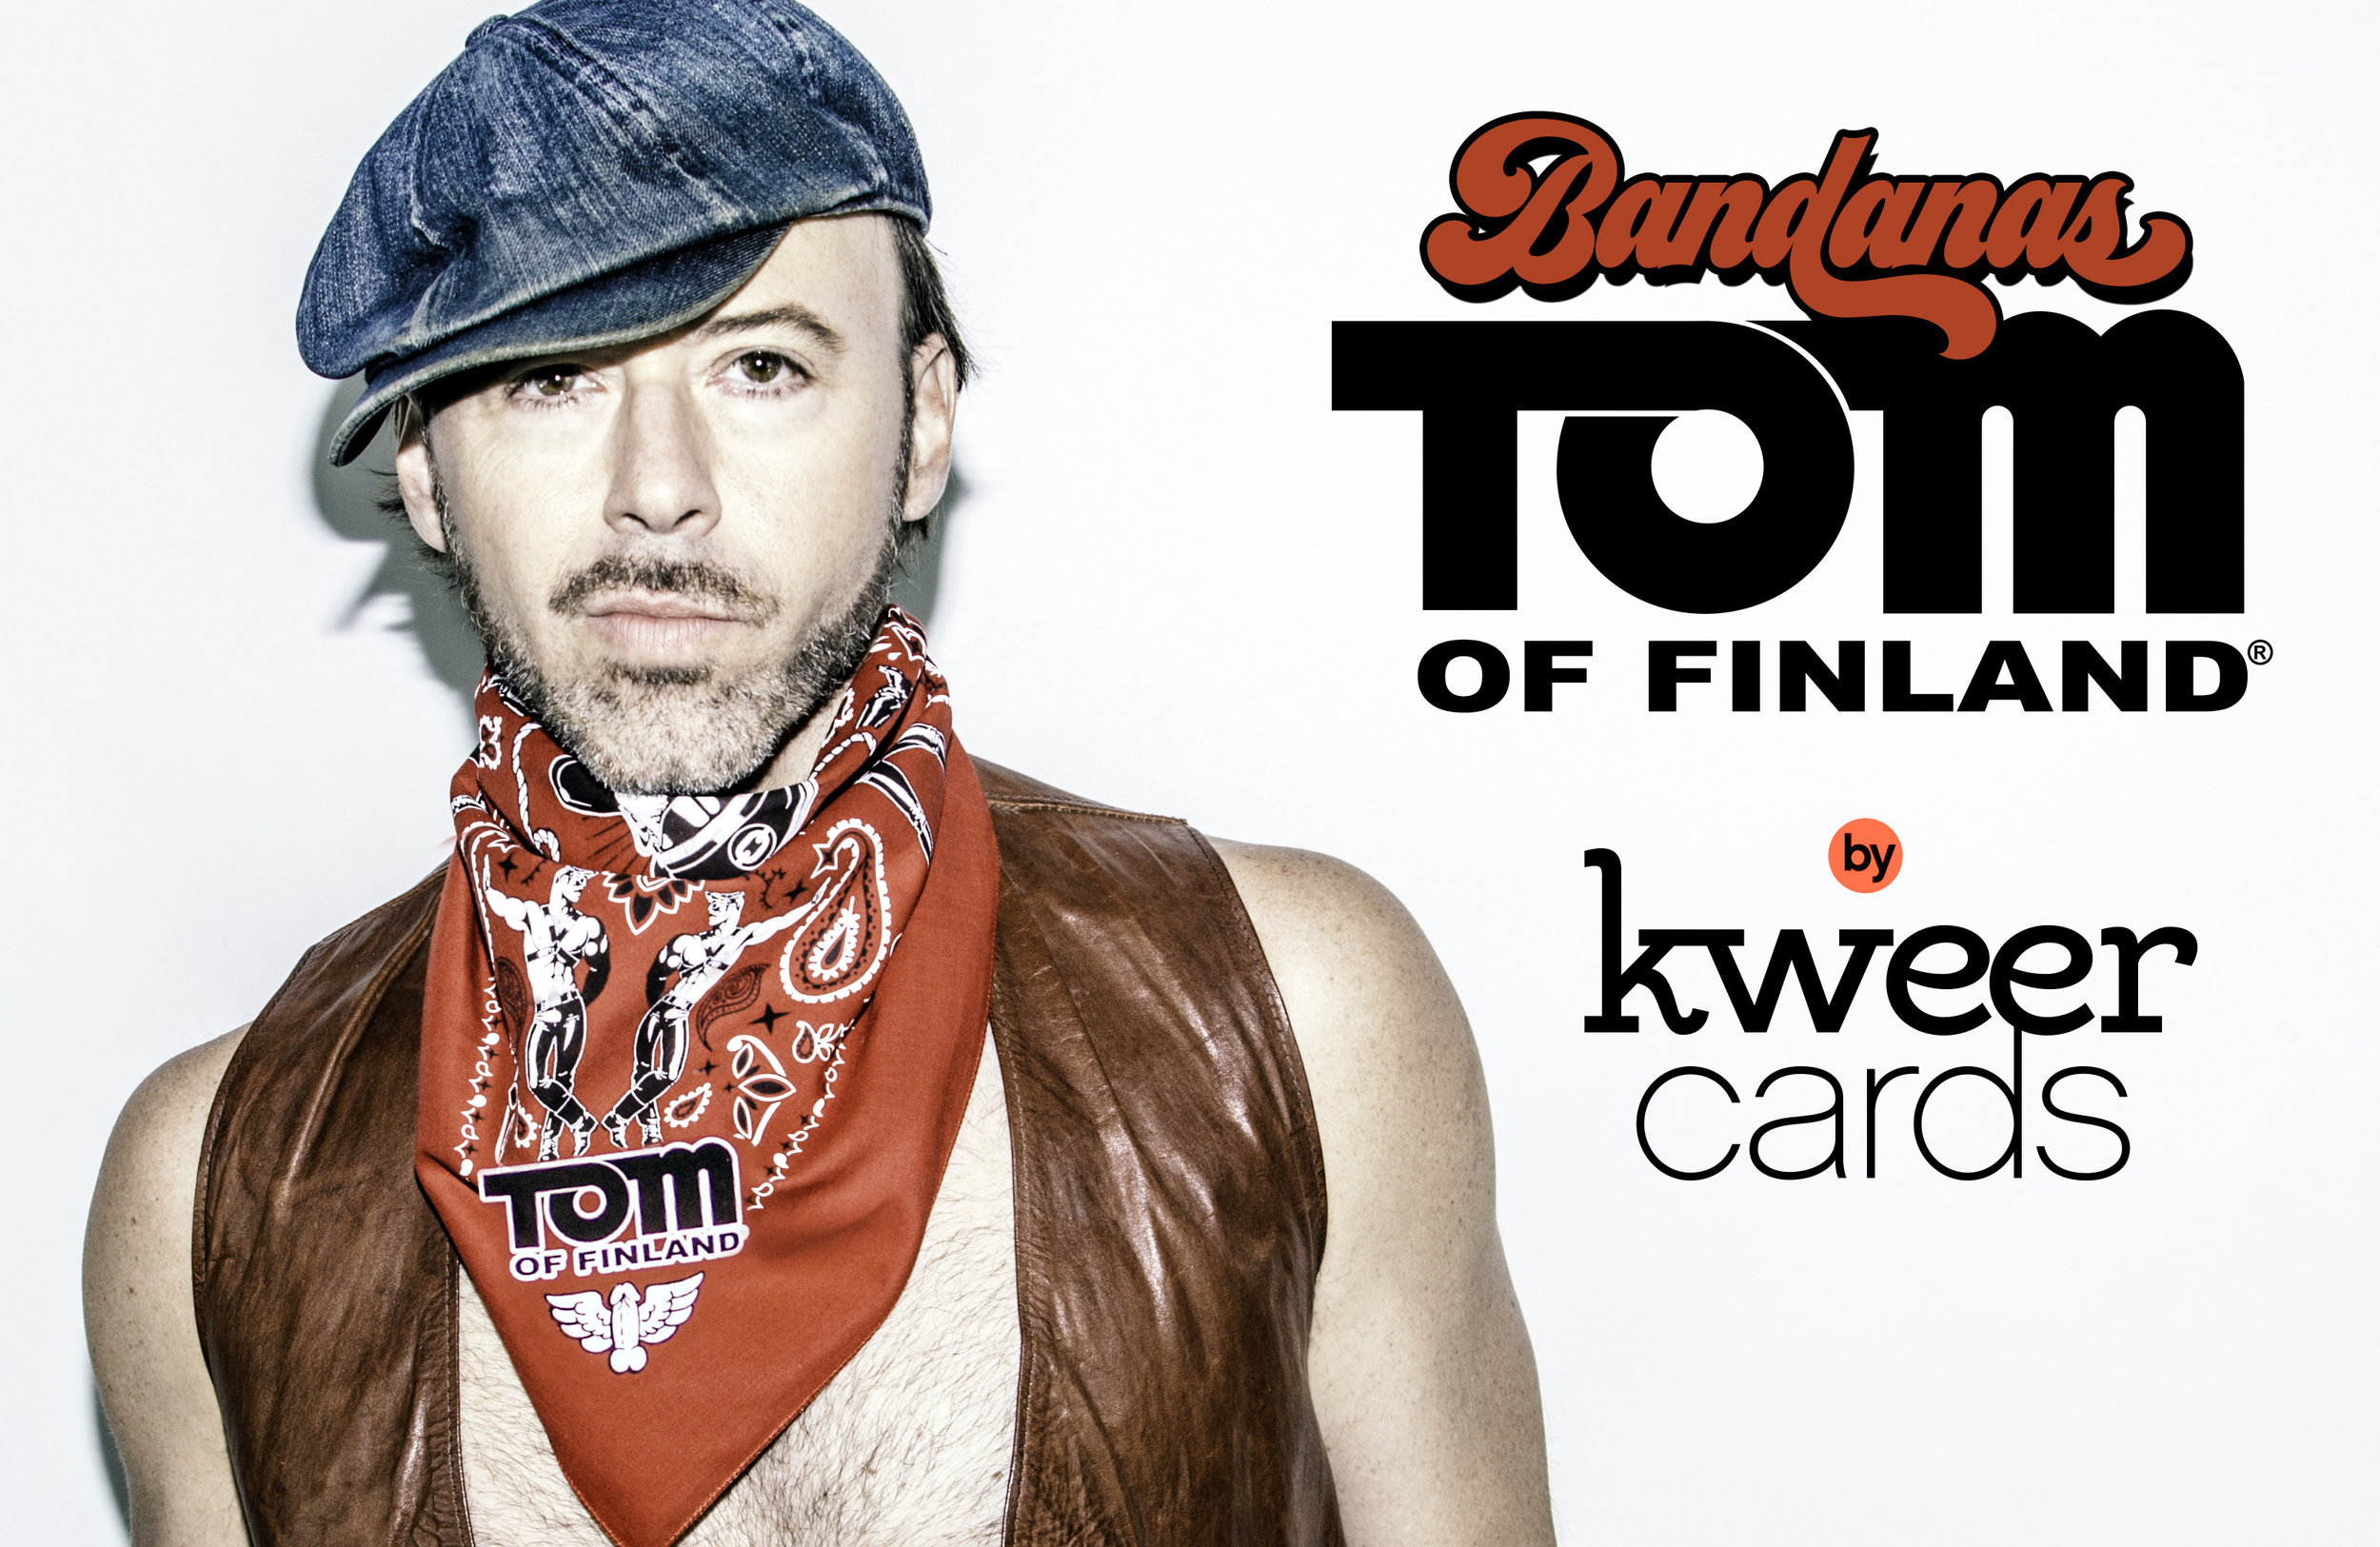 TOM OF FINLAND GAY BANDANAS.jpg